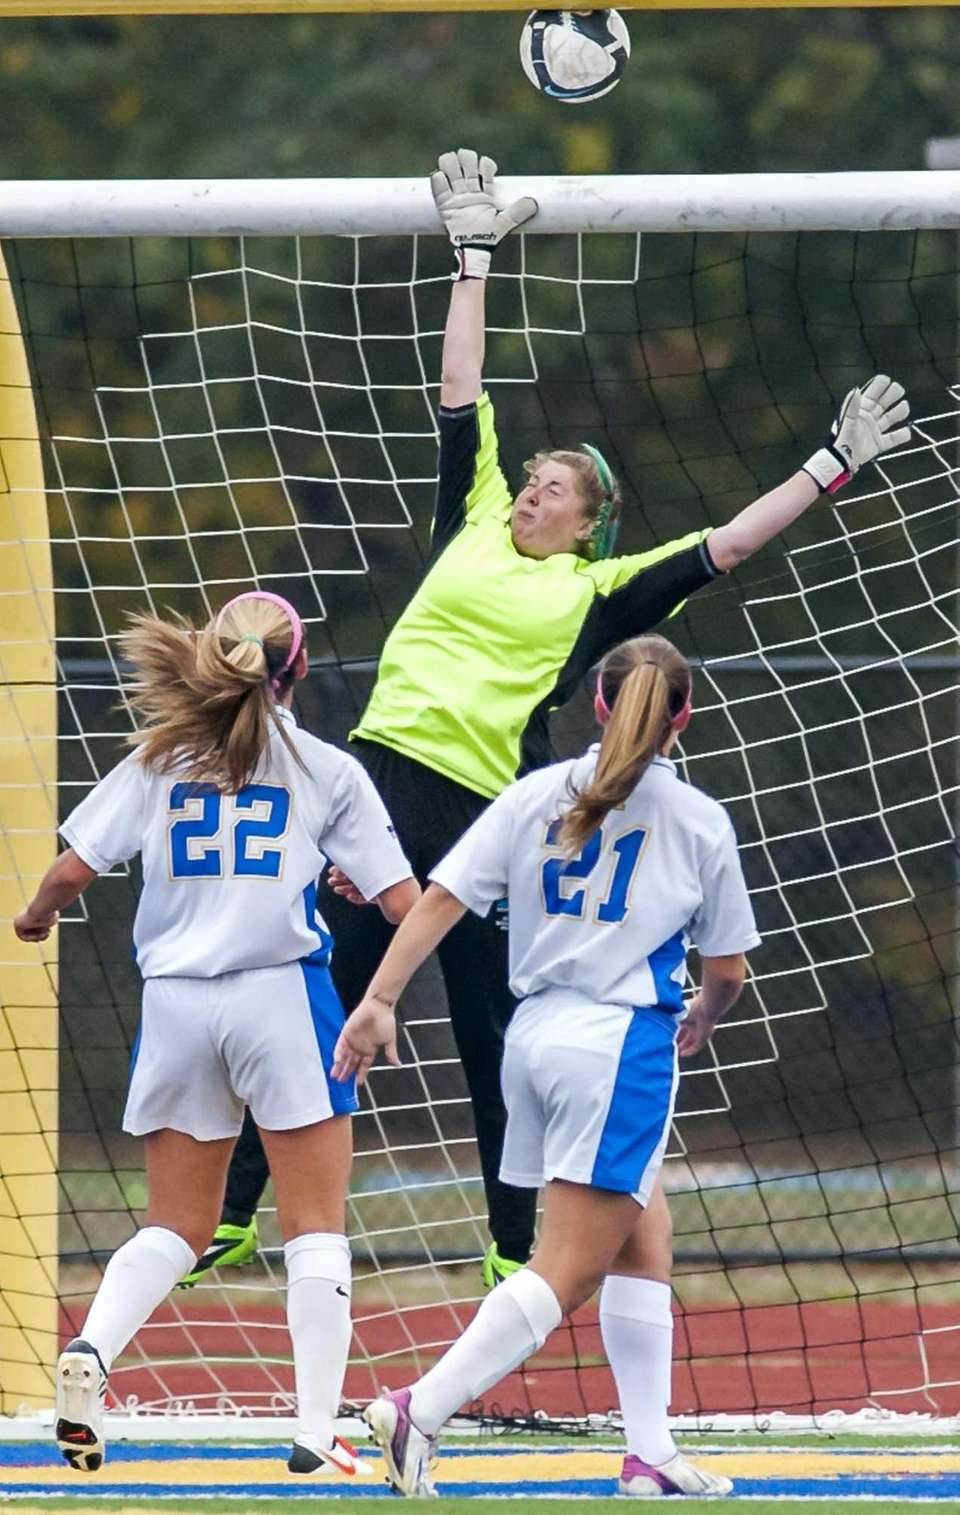 West Islip goalkeeper Megan Deak, center, goes up